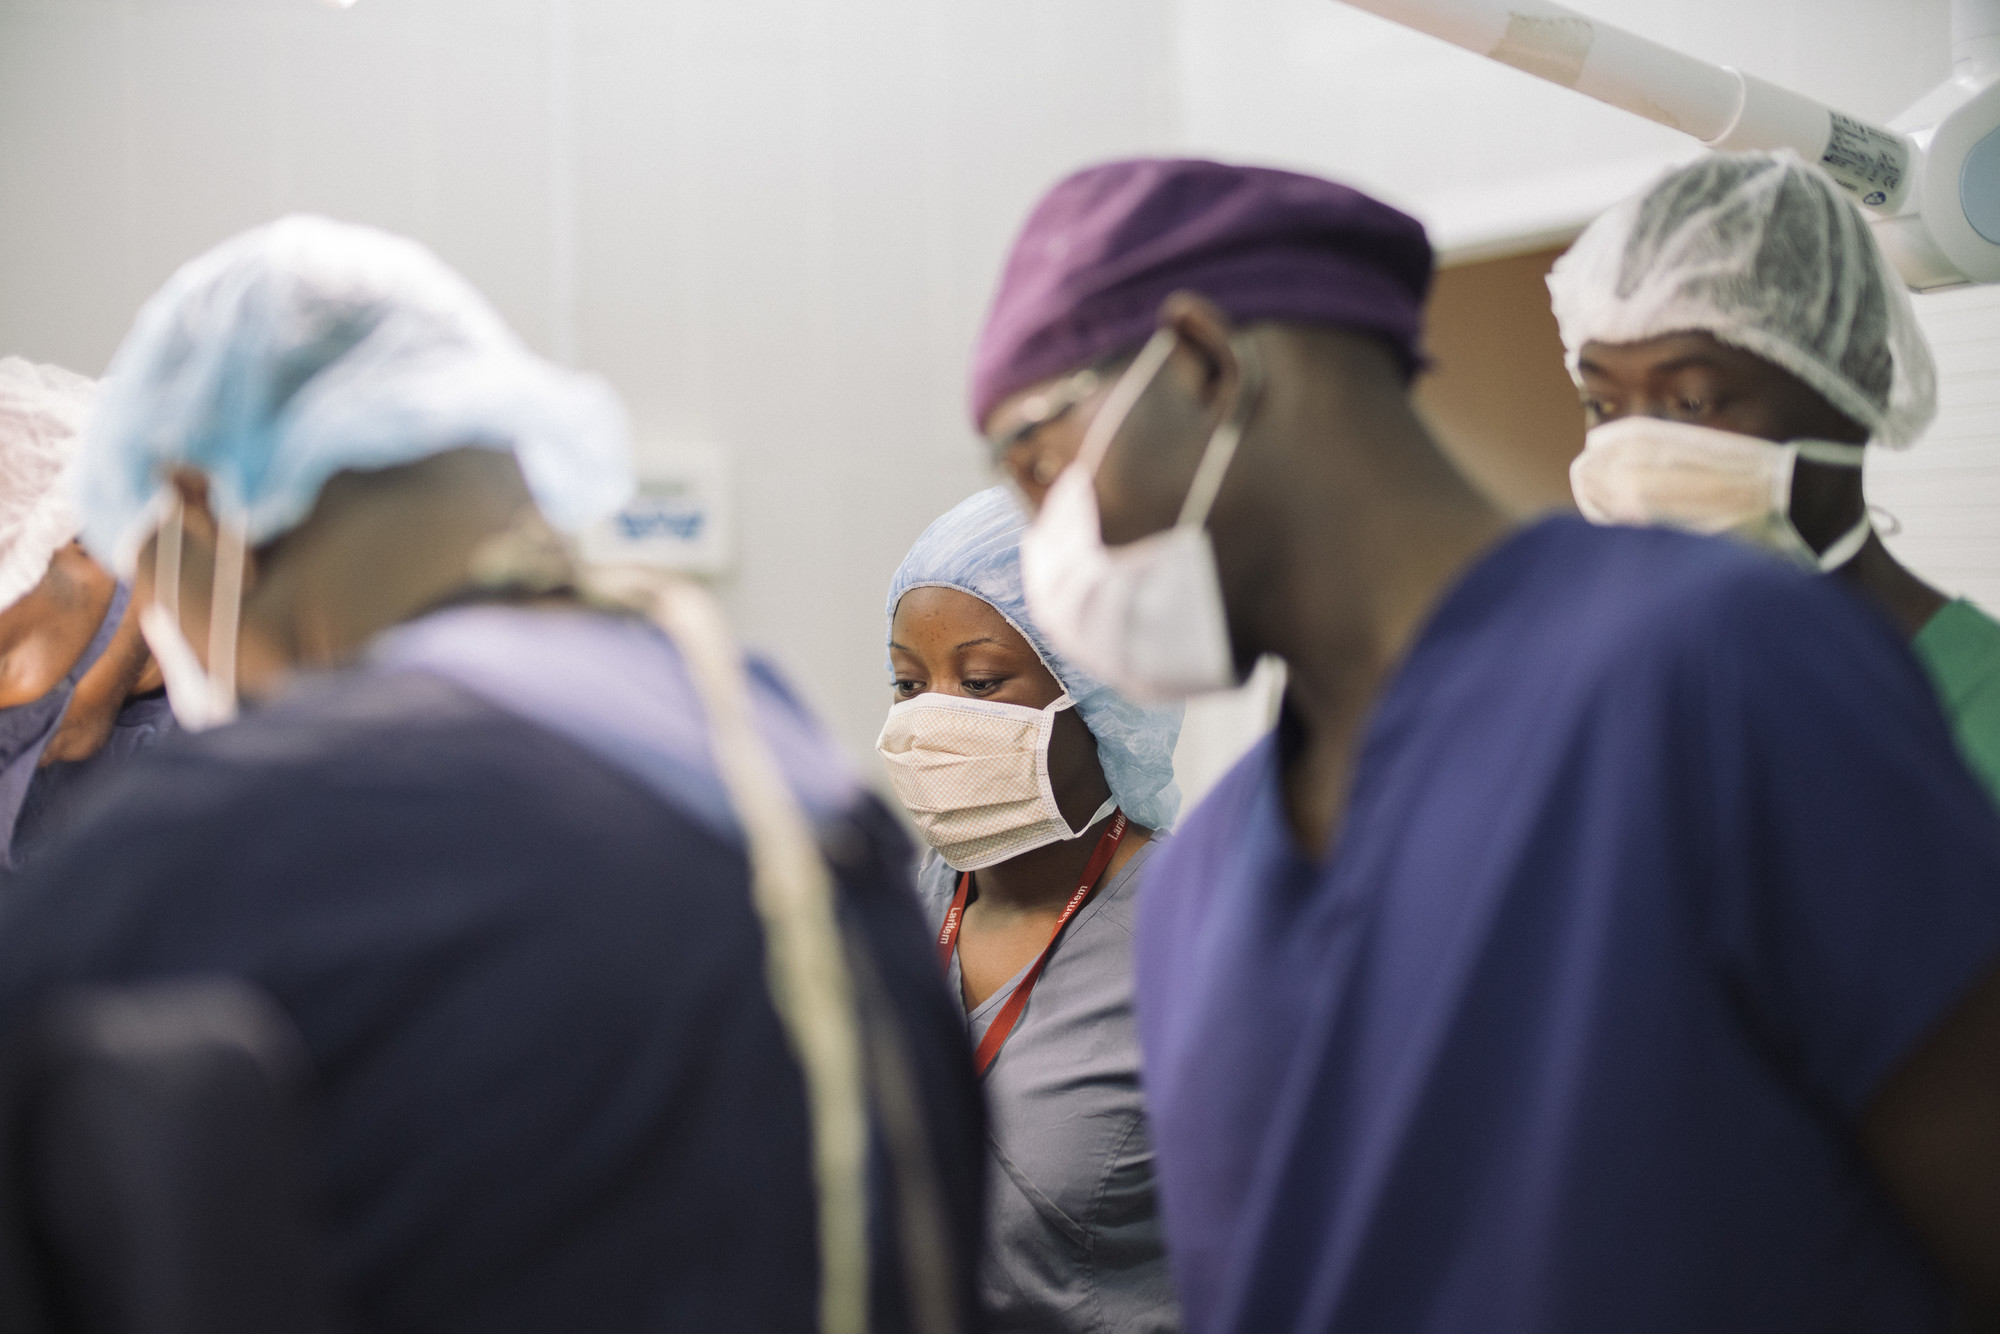 Photo of health workers in Mali by Nana Kofi Acquah for IntraHealth International. IntraHealth leads the secretariat for the Frontline Health Workers Coalition.